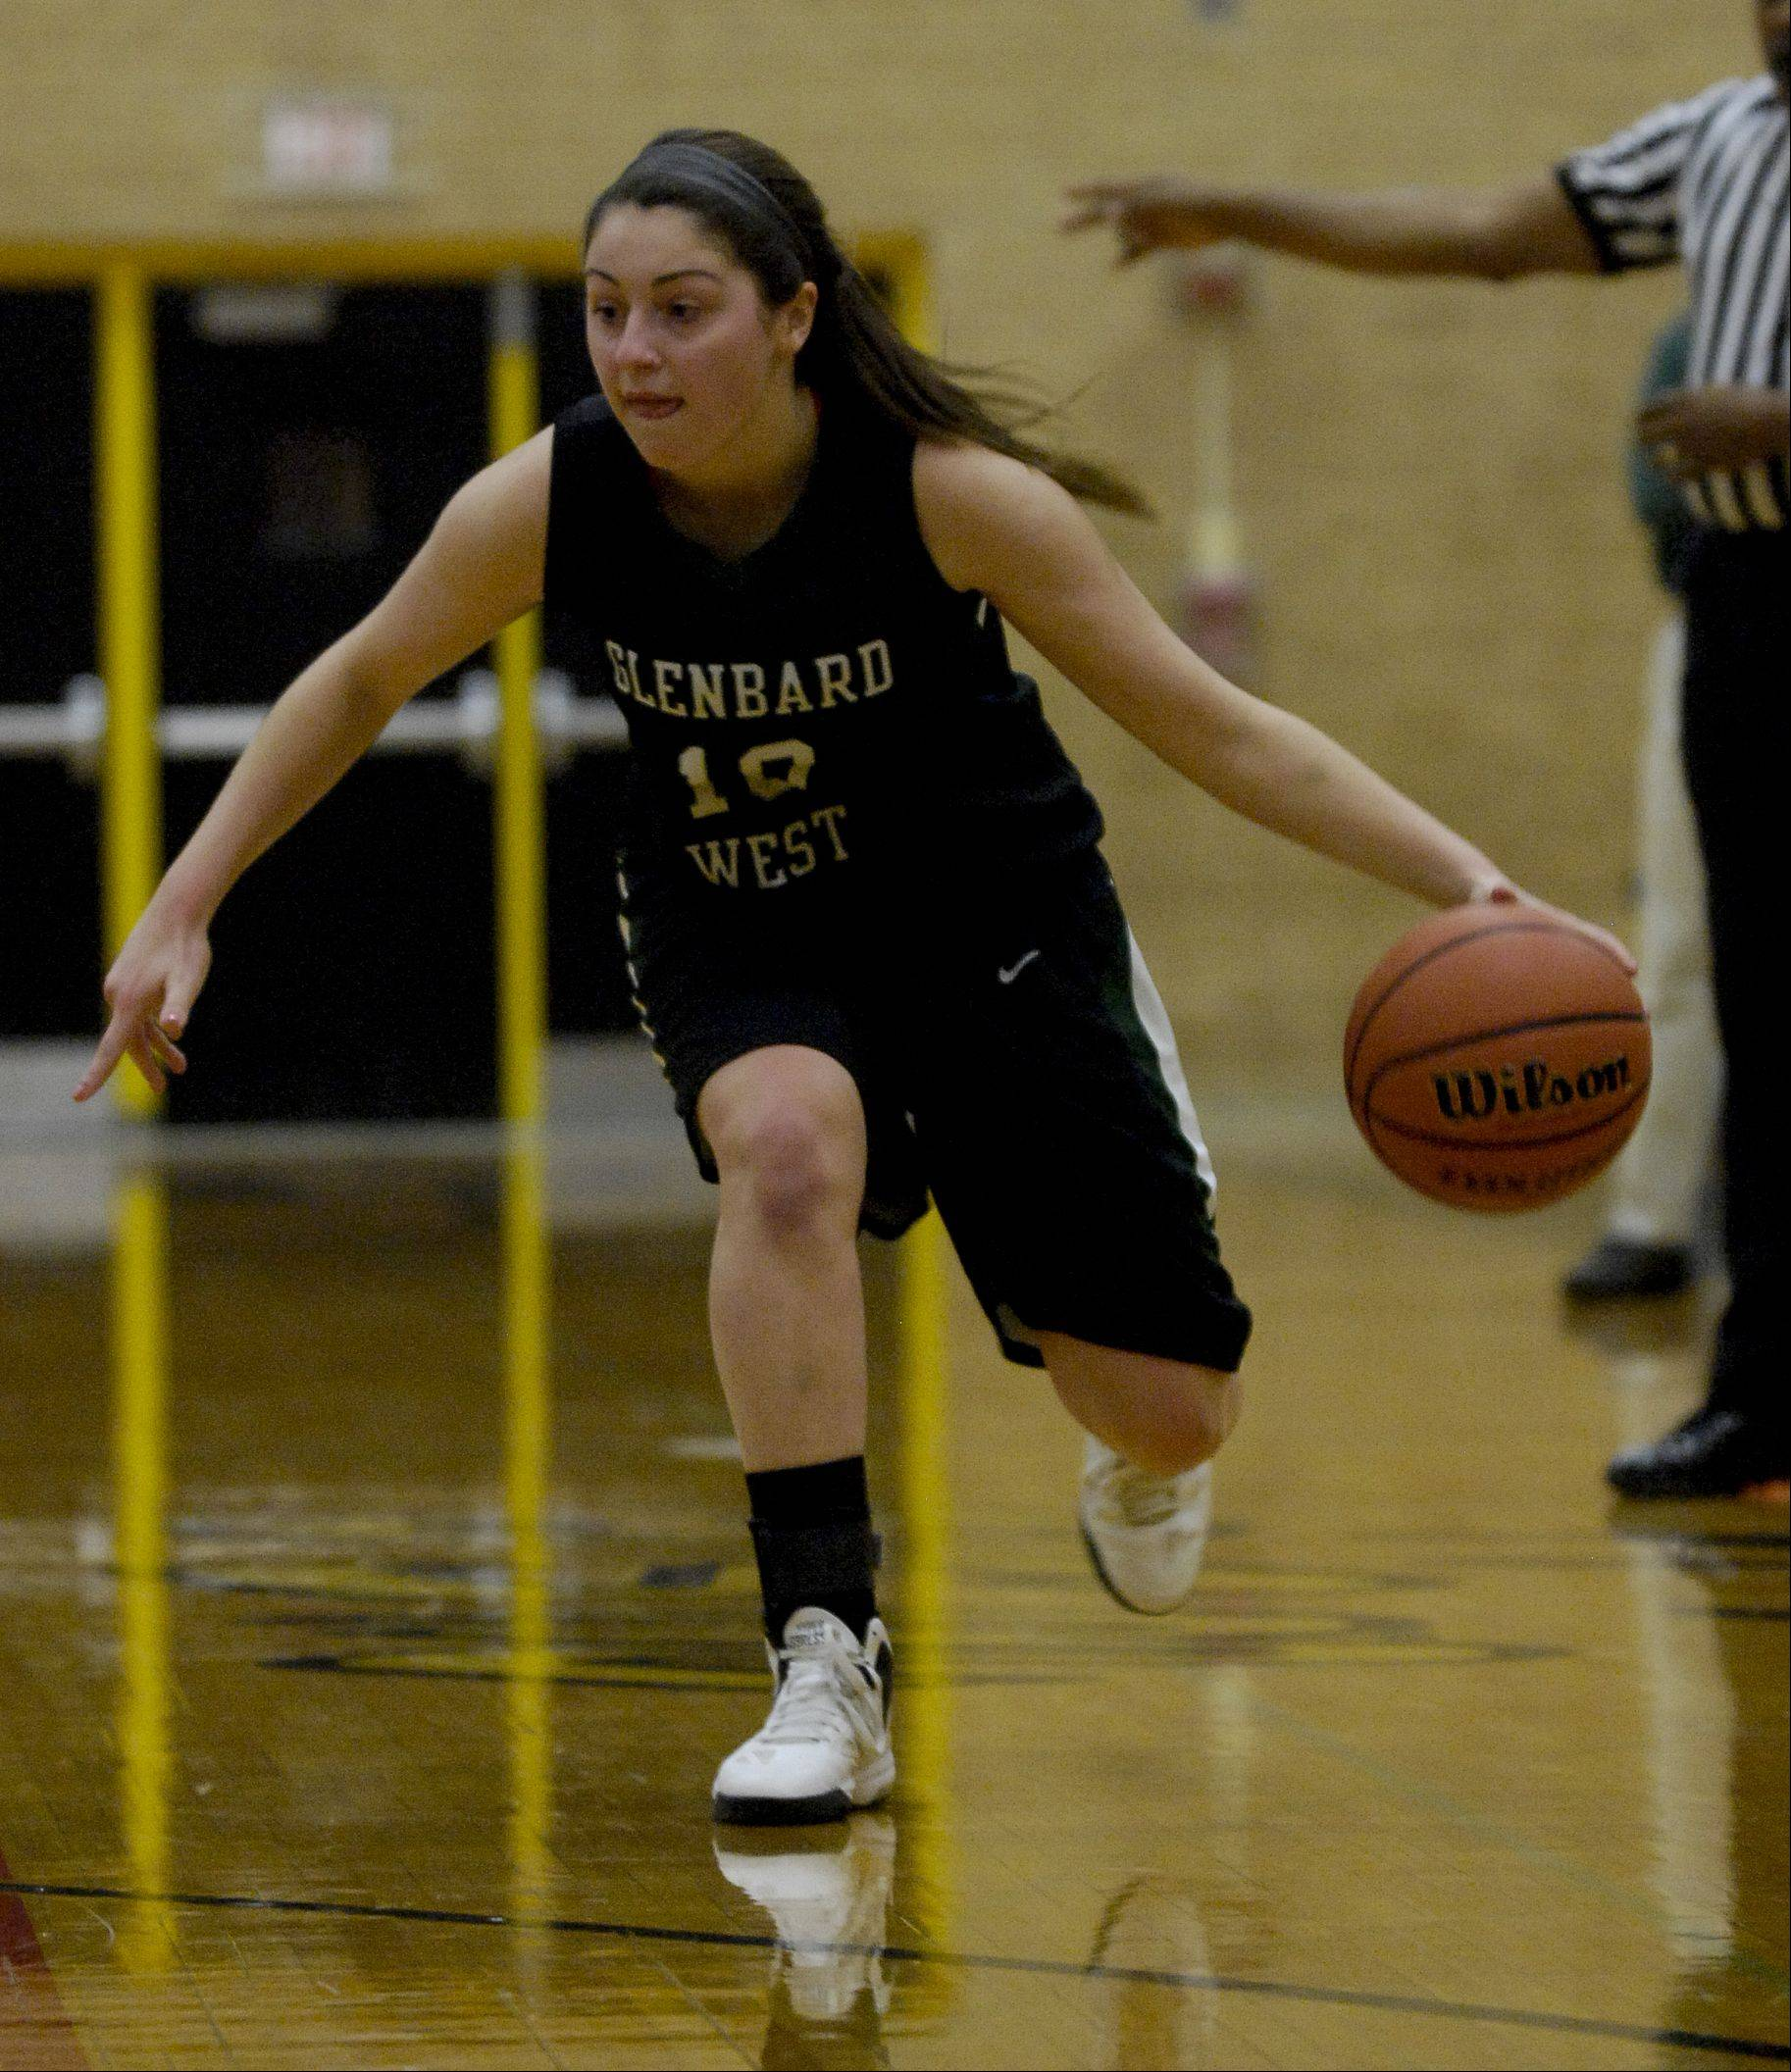 Hinsdale South High School hosted Glenbard West Monday night for girls basketball.